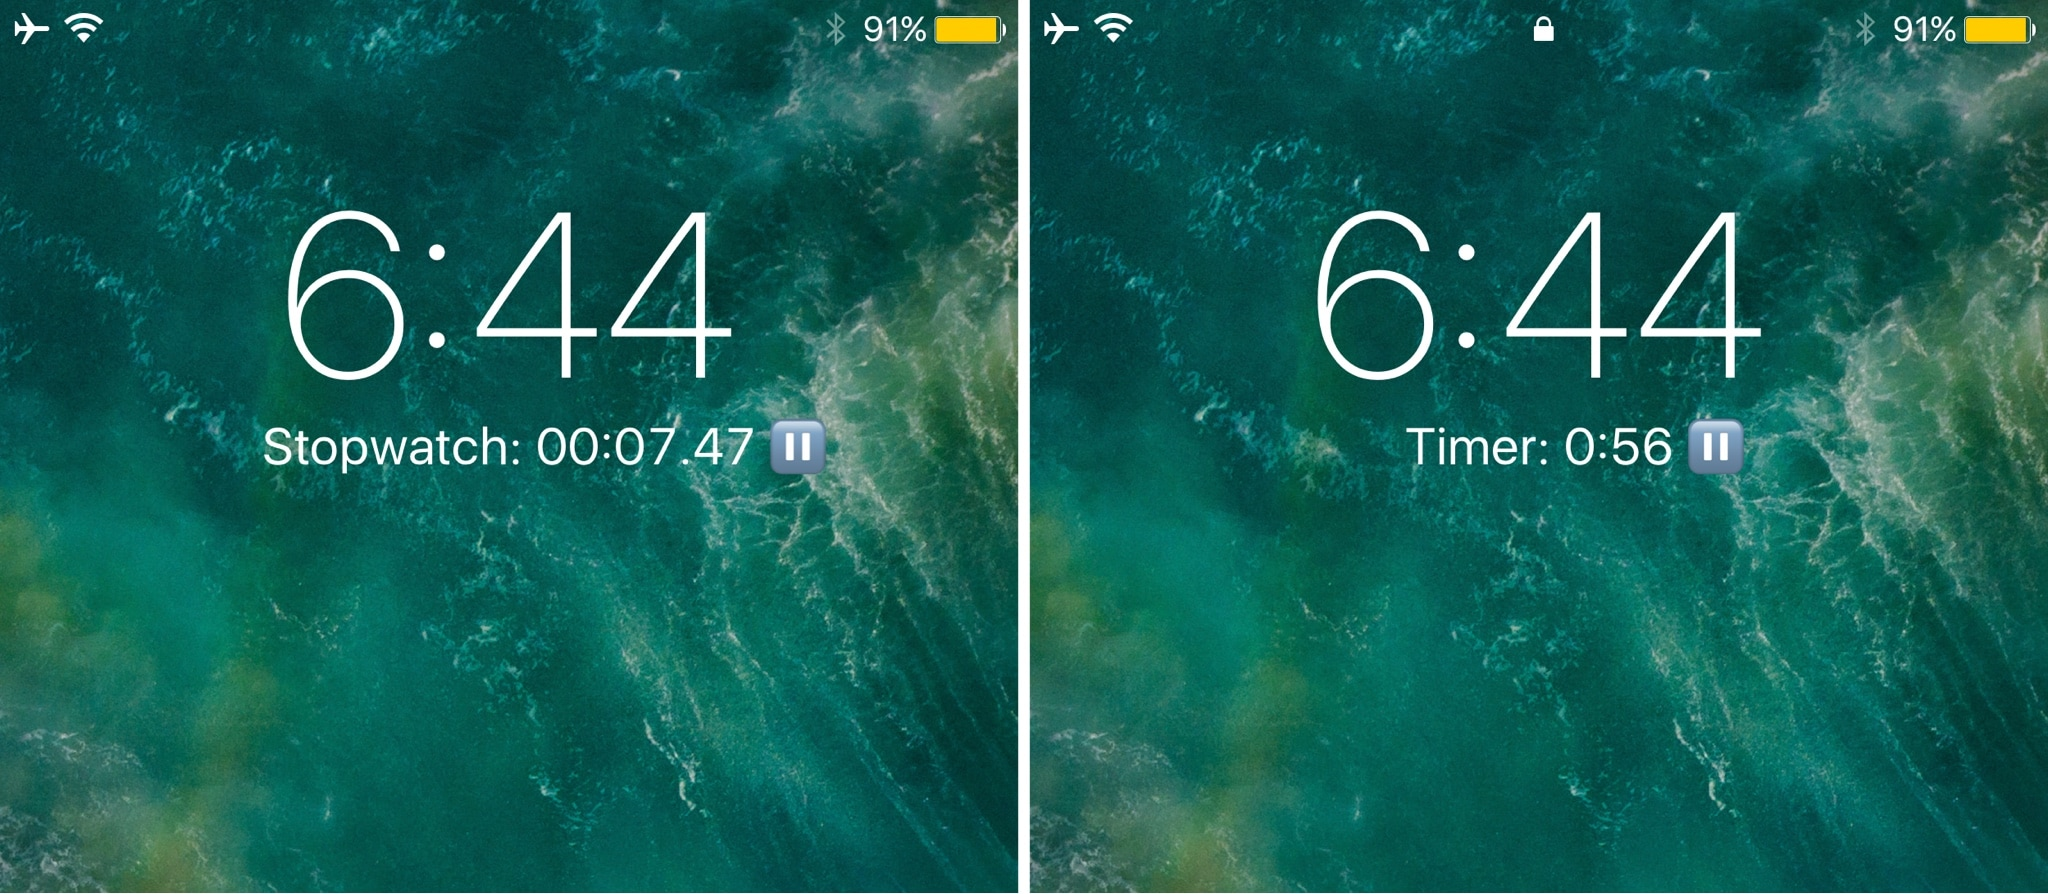 This tweak makes it easier to access a stopwatch or timer